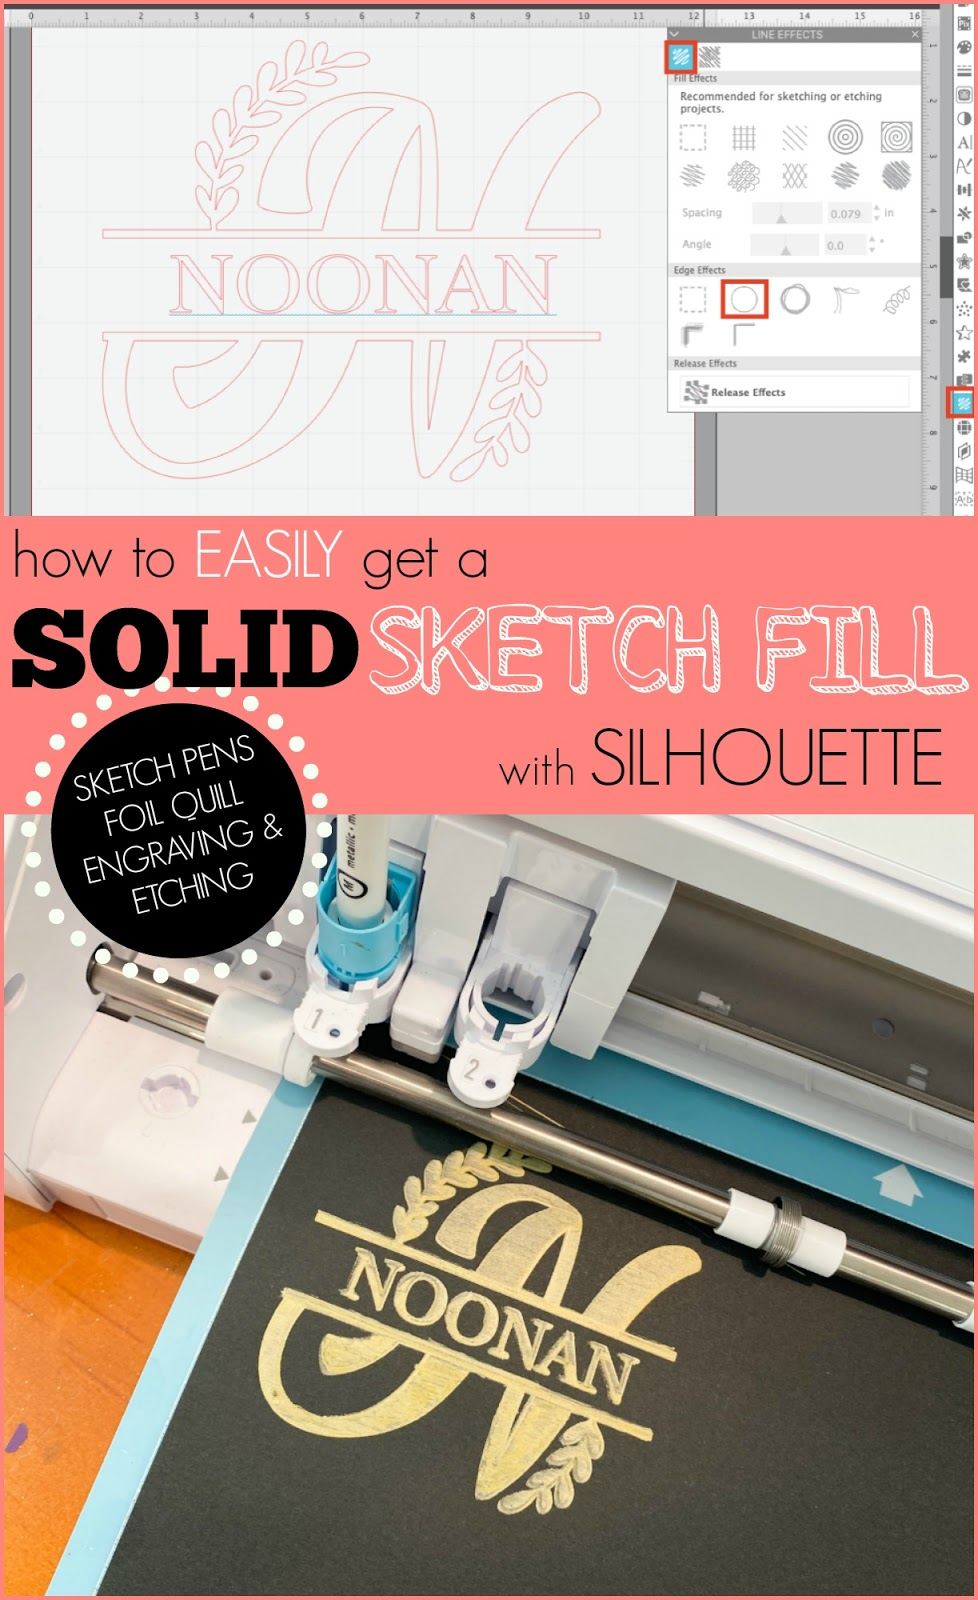 silhouette america blog, silhouette 101, foil quill, sketch pens, etching